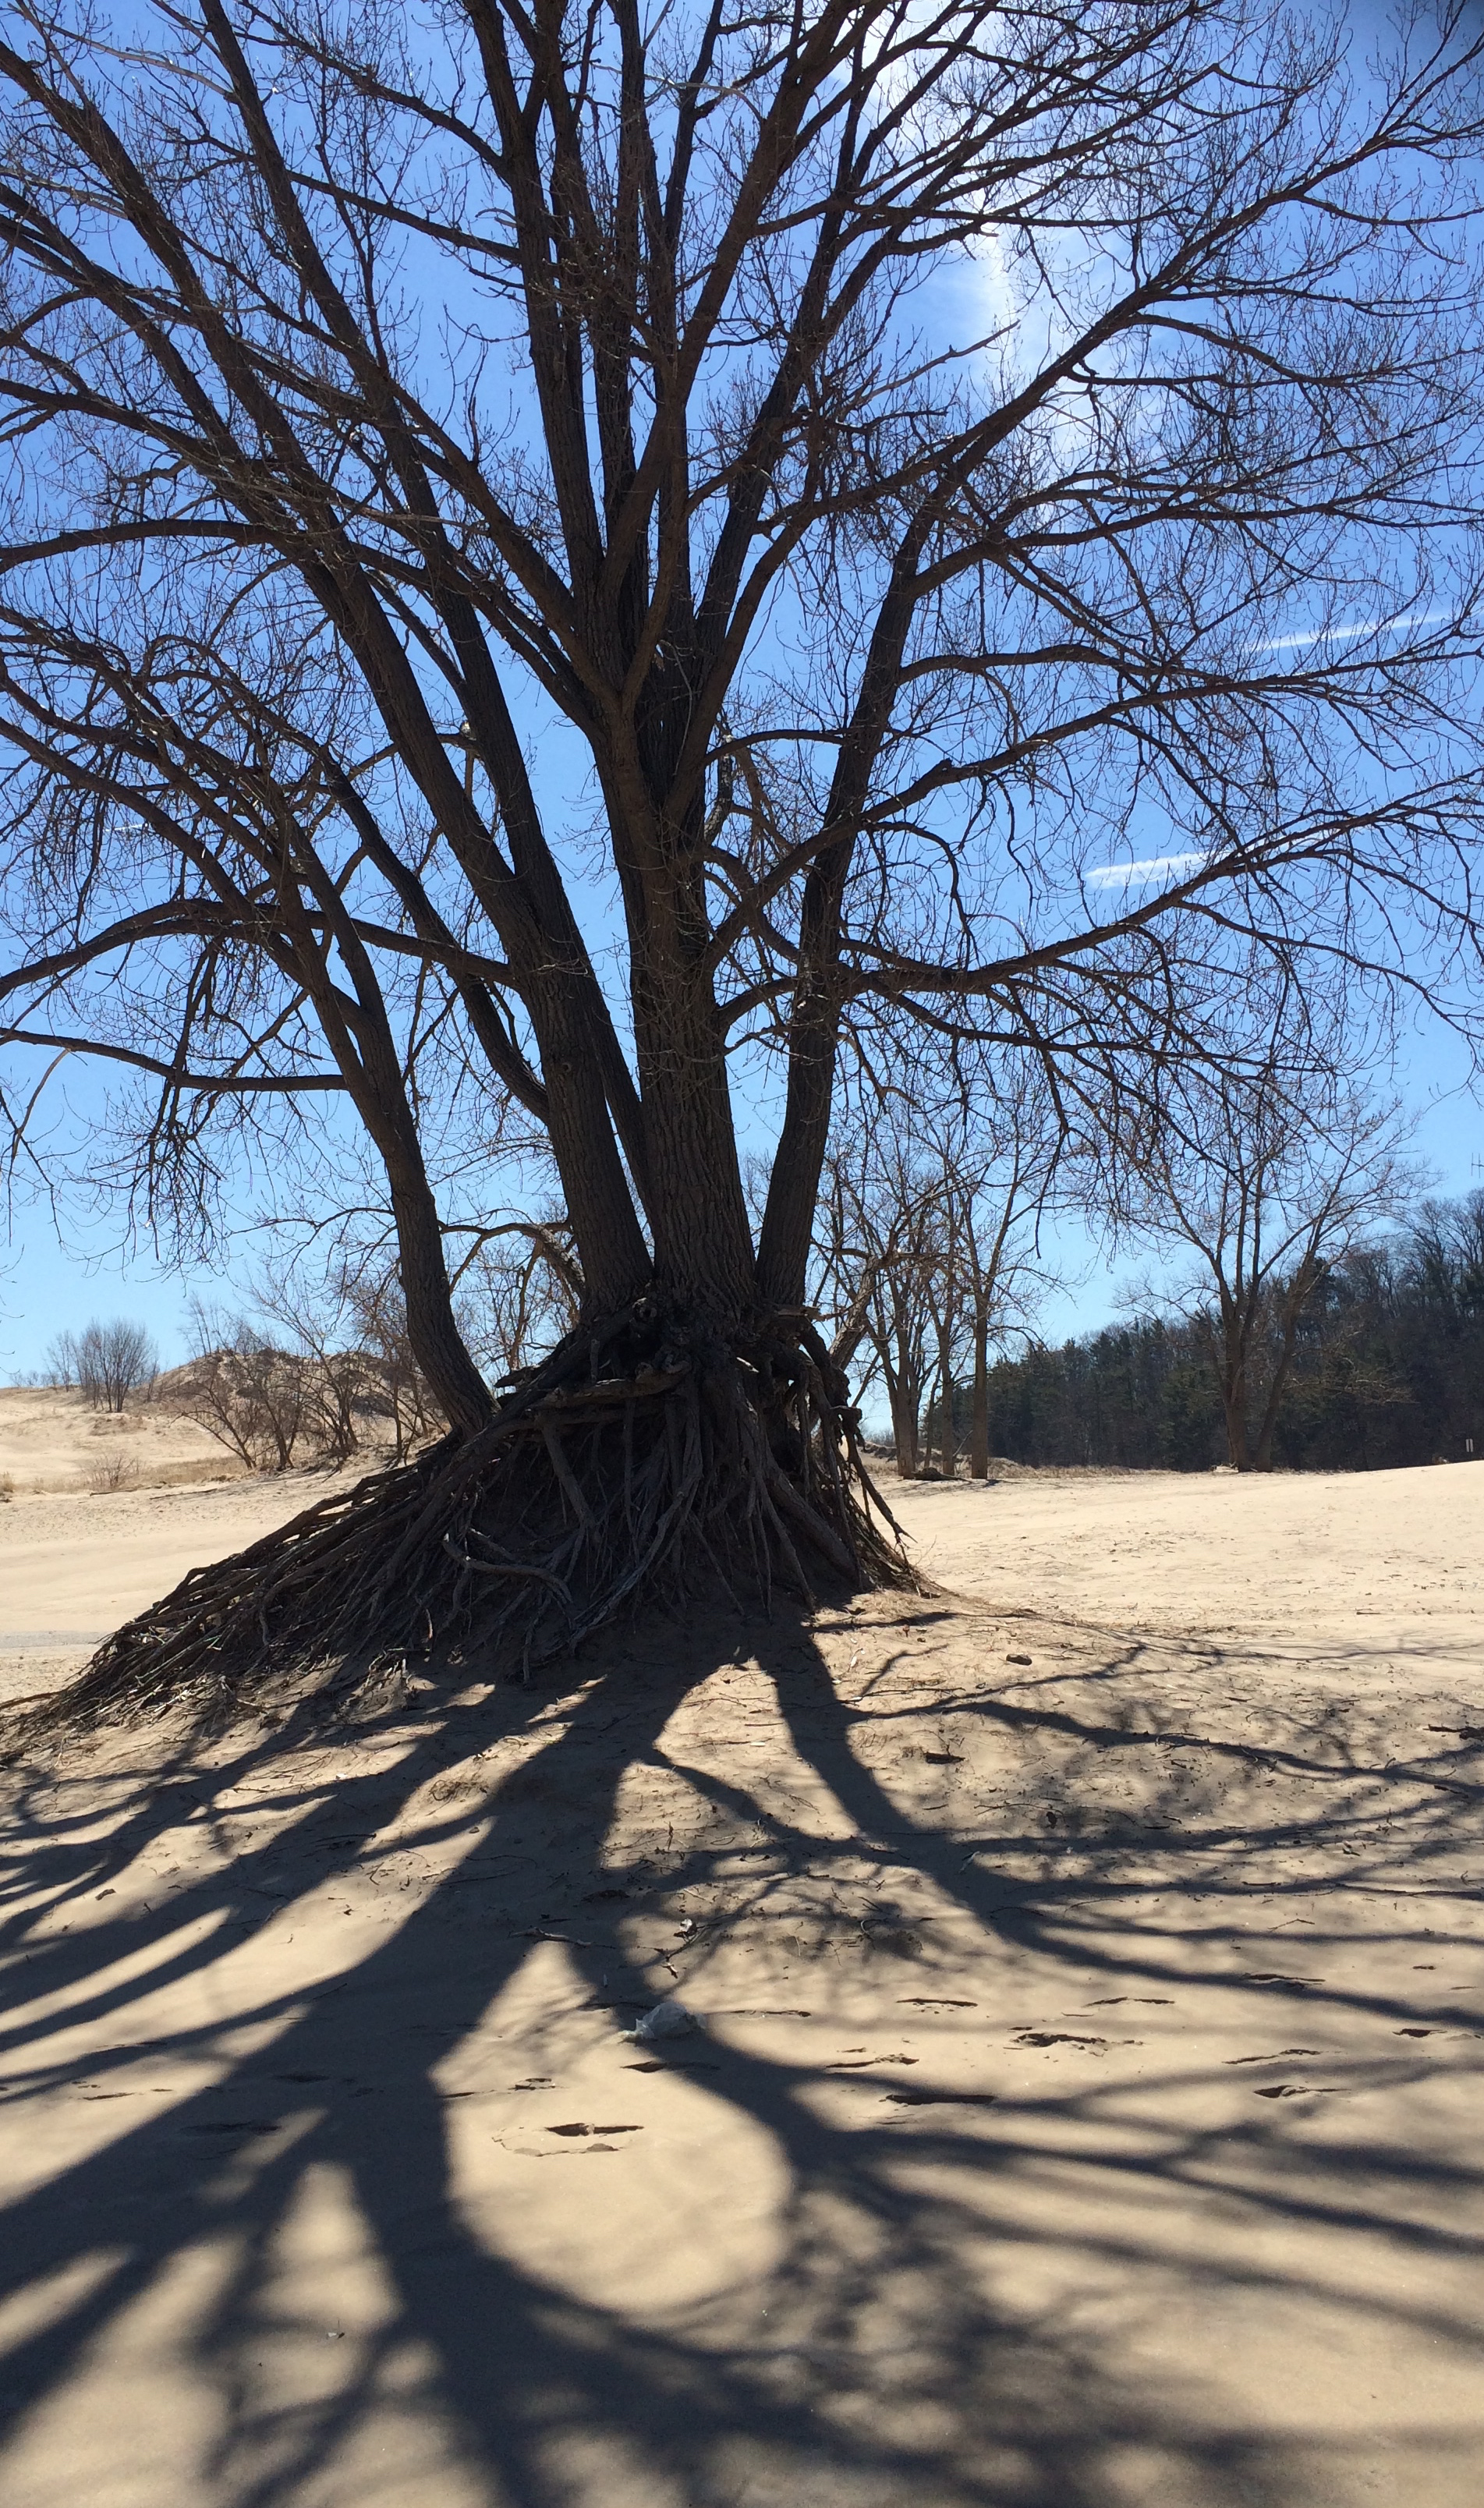 dunes-tree-shadows.jpg